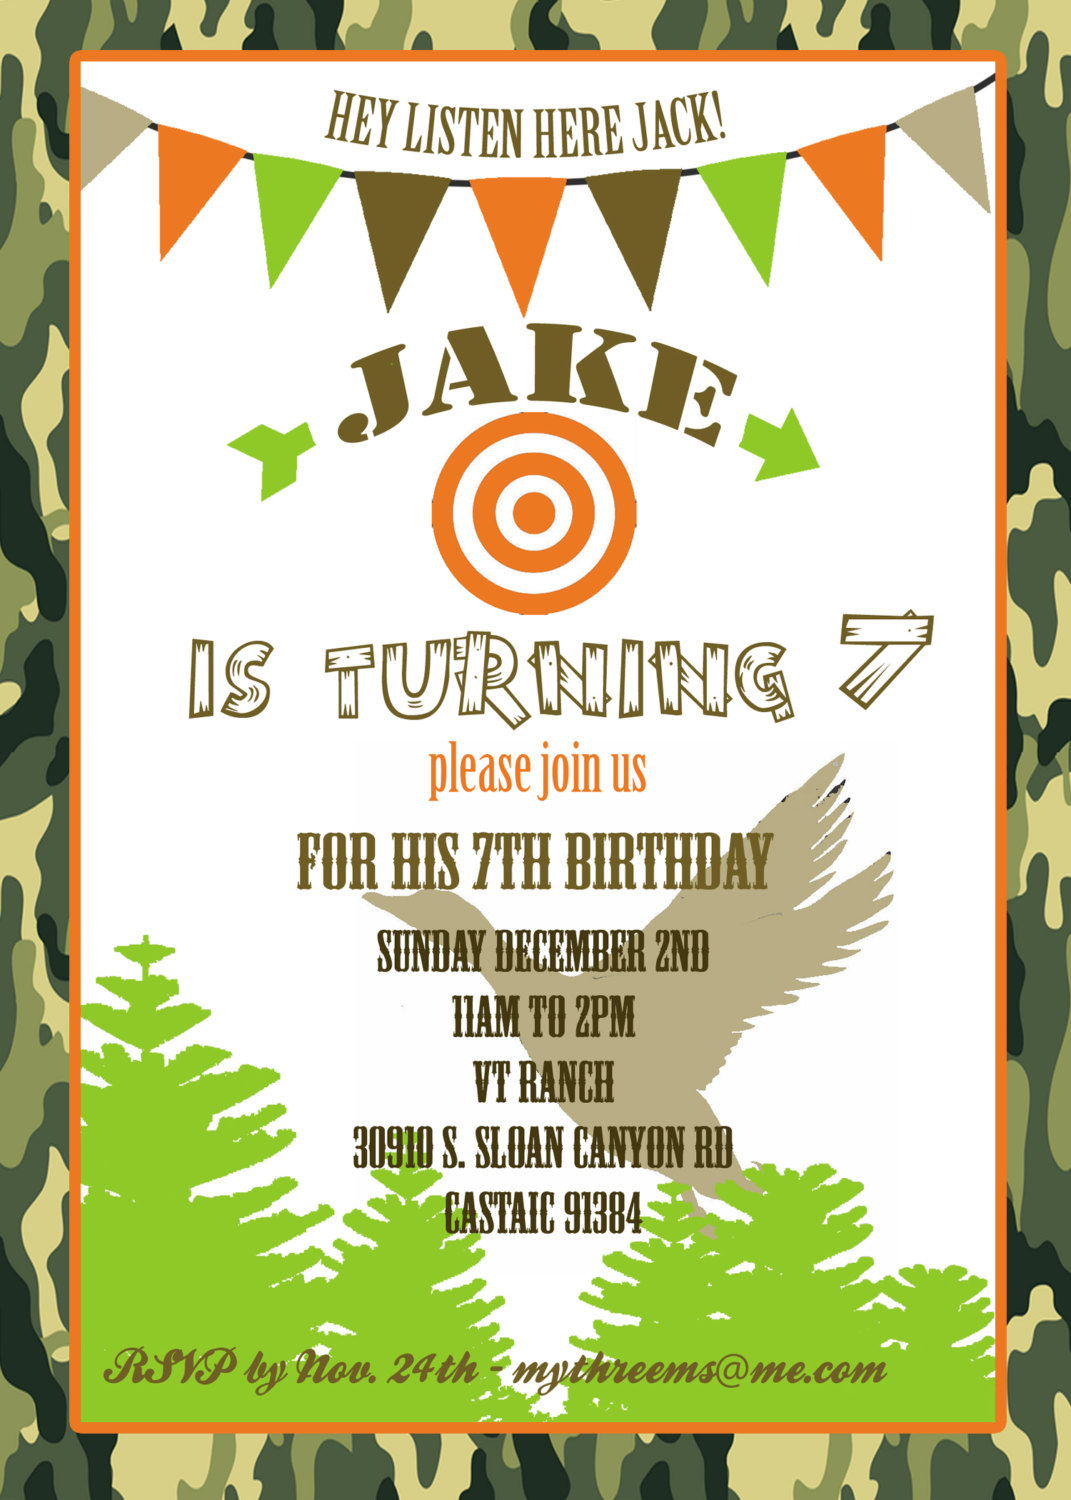 Duck dynasty invitation duck hunting party invitation birthday duck dynasty invitation duck hunting party invitation birthday invitation printable digital file or printed invitations outdoor party filmwisefo